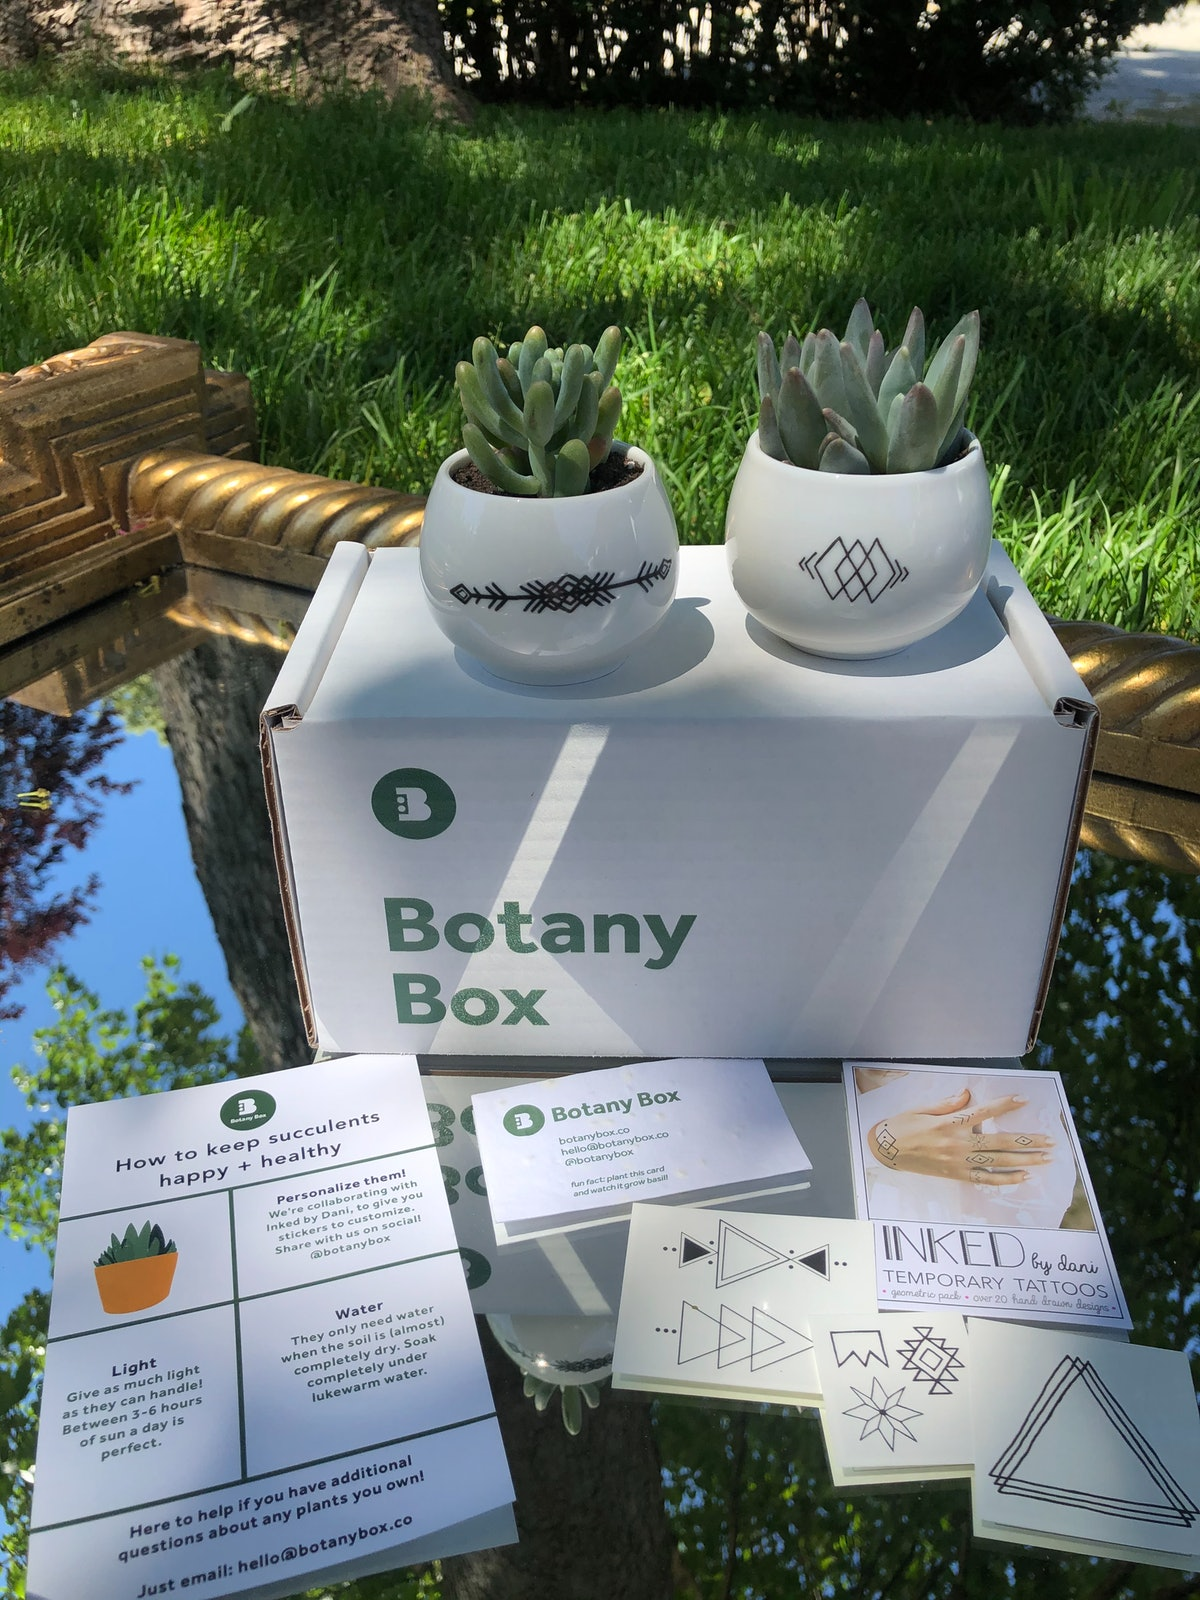 Botany Box Duo With INKED By Dani